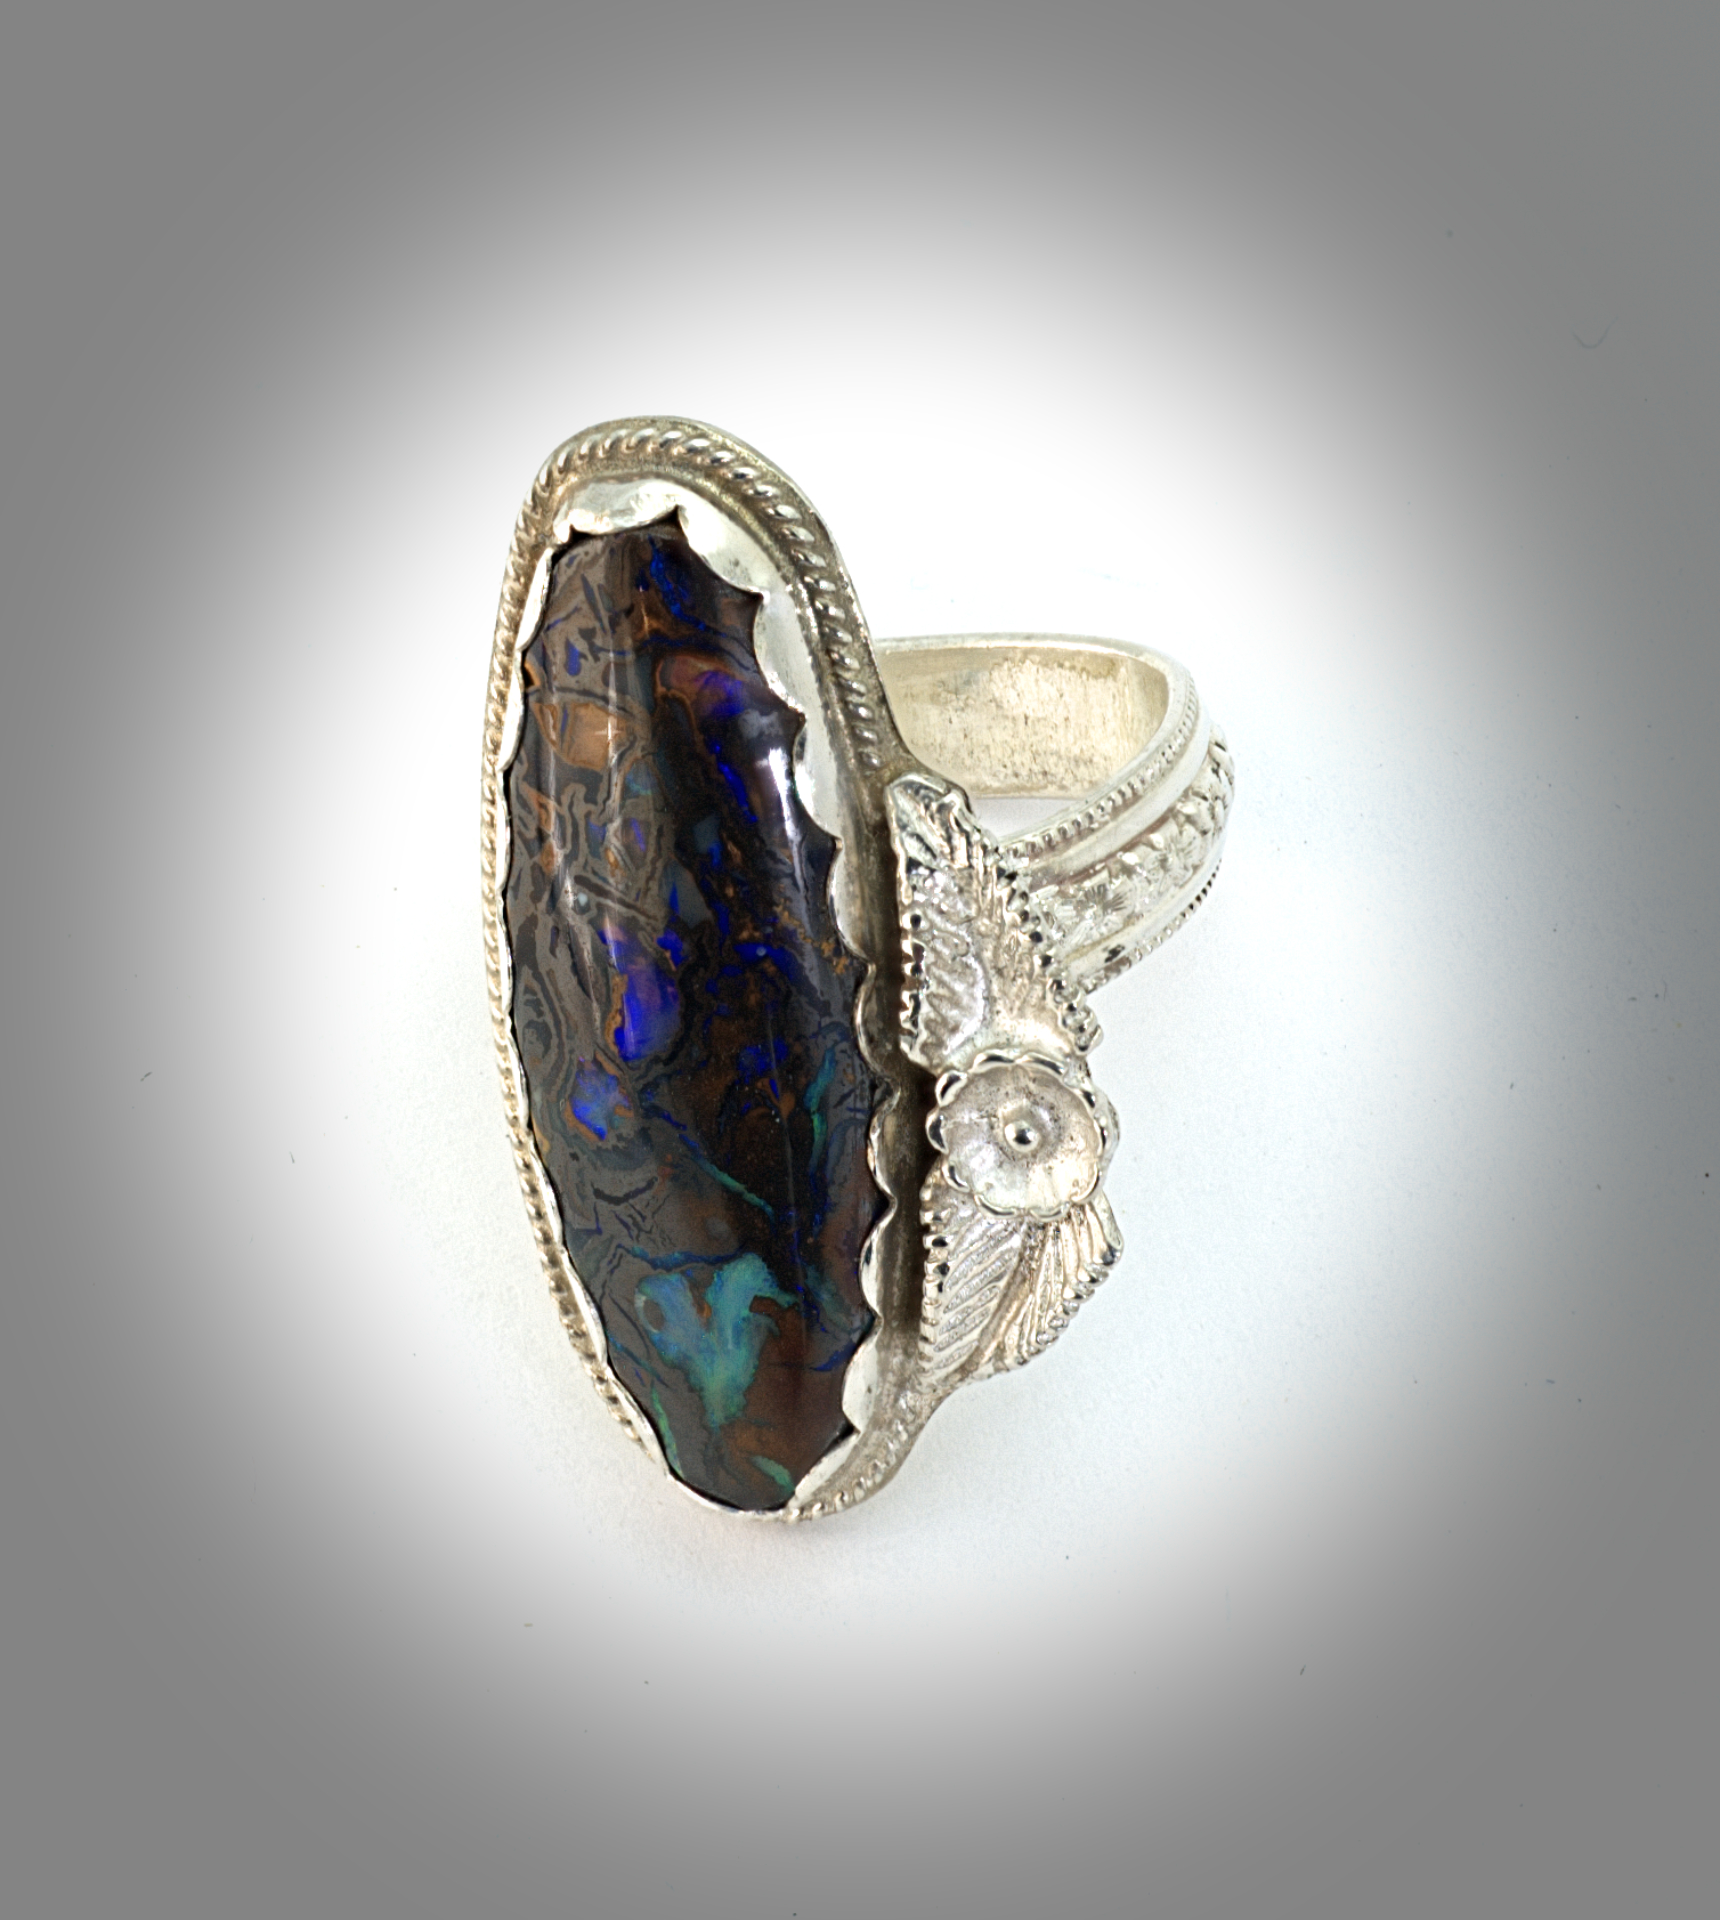 opal cheap rewards img buy online search for boulder rings and engagement jewellery store